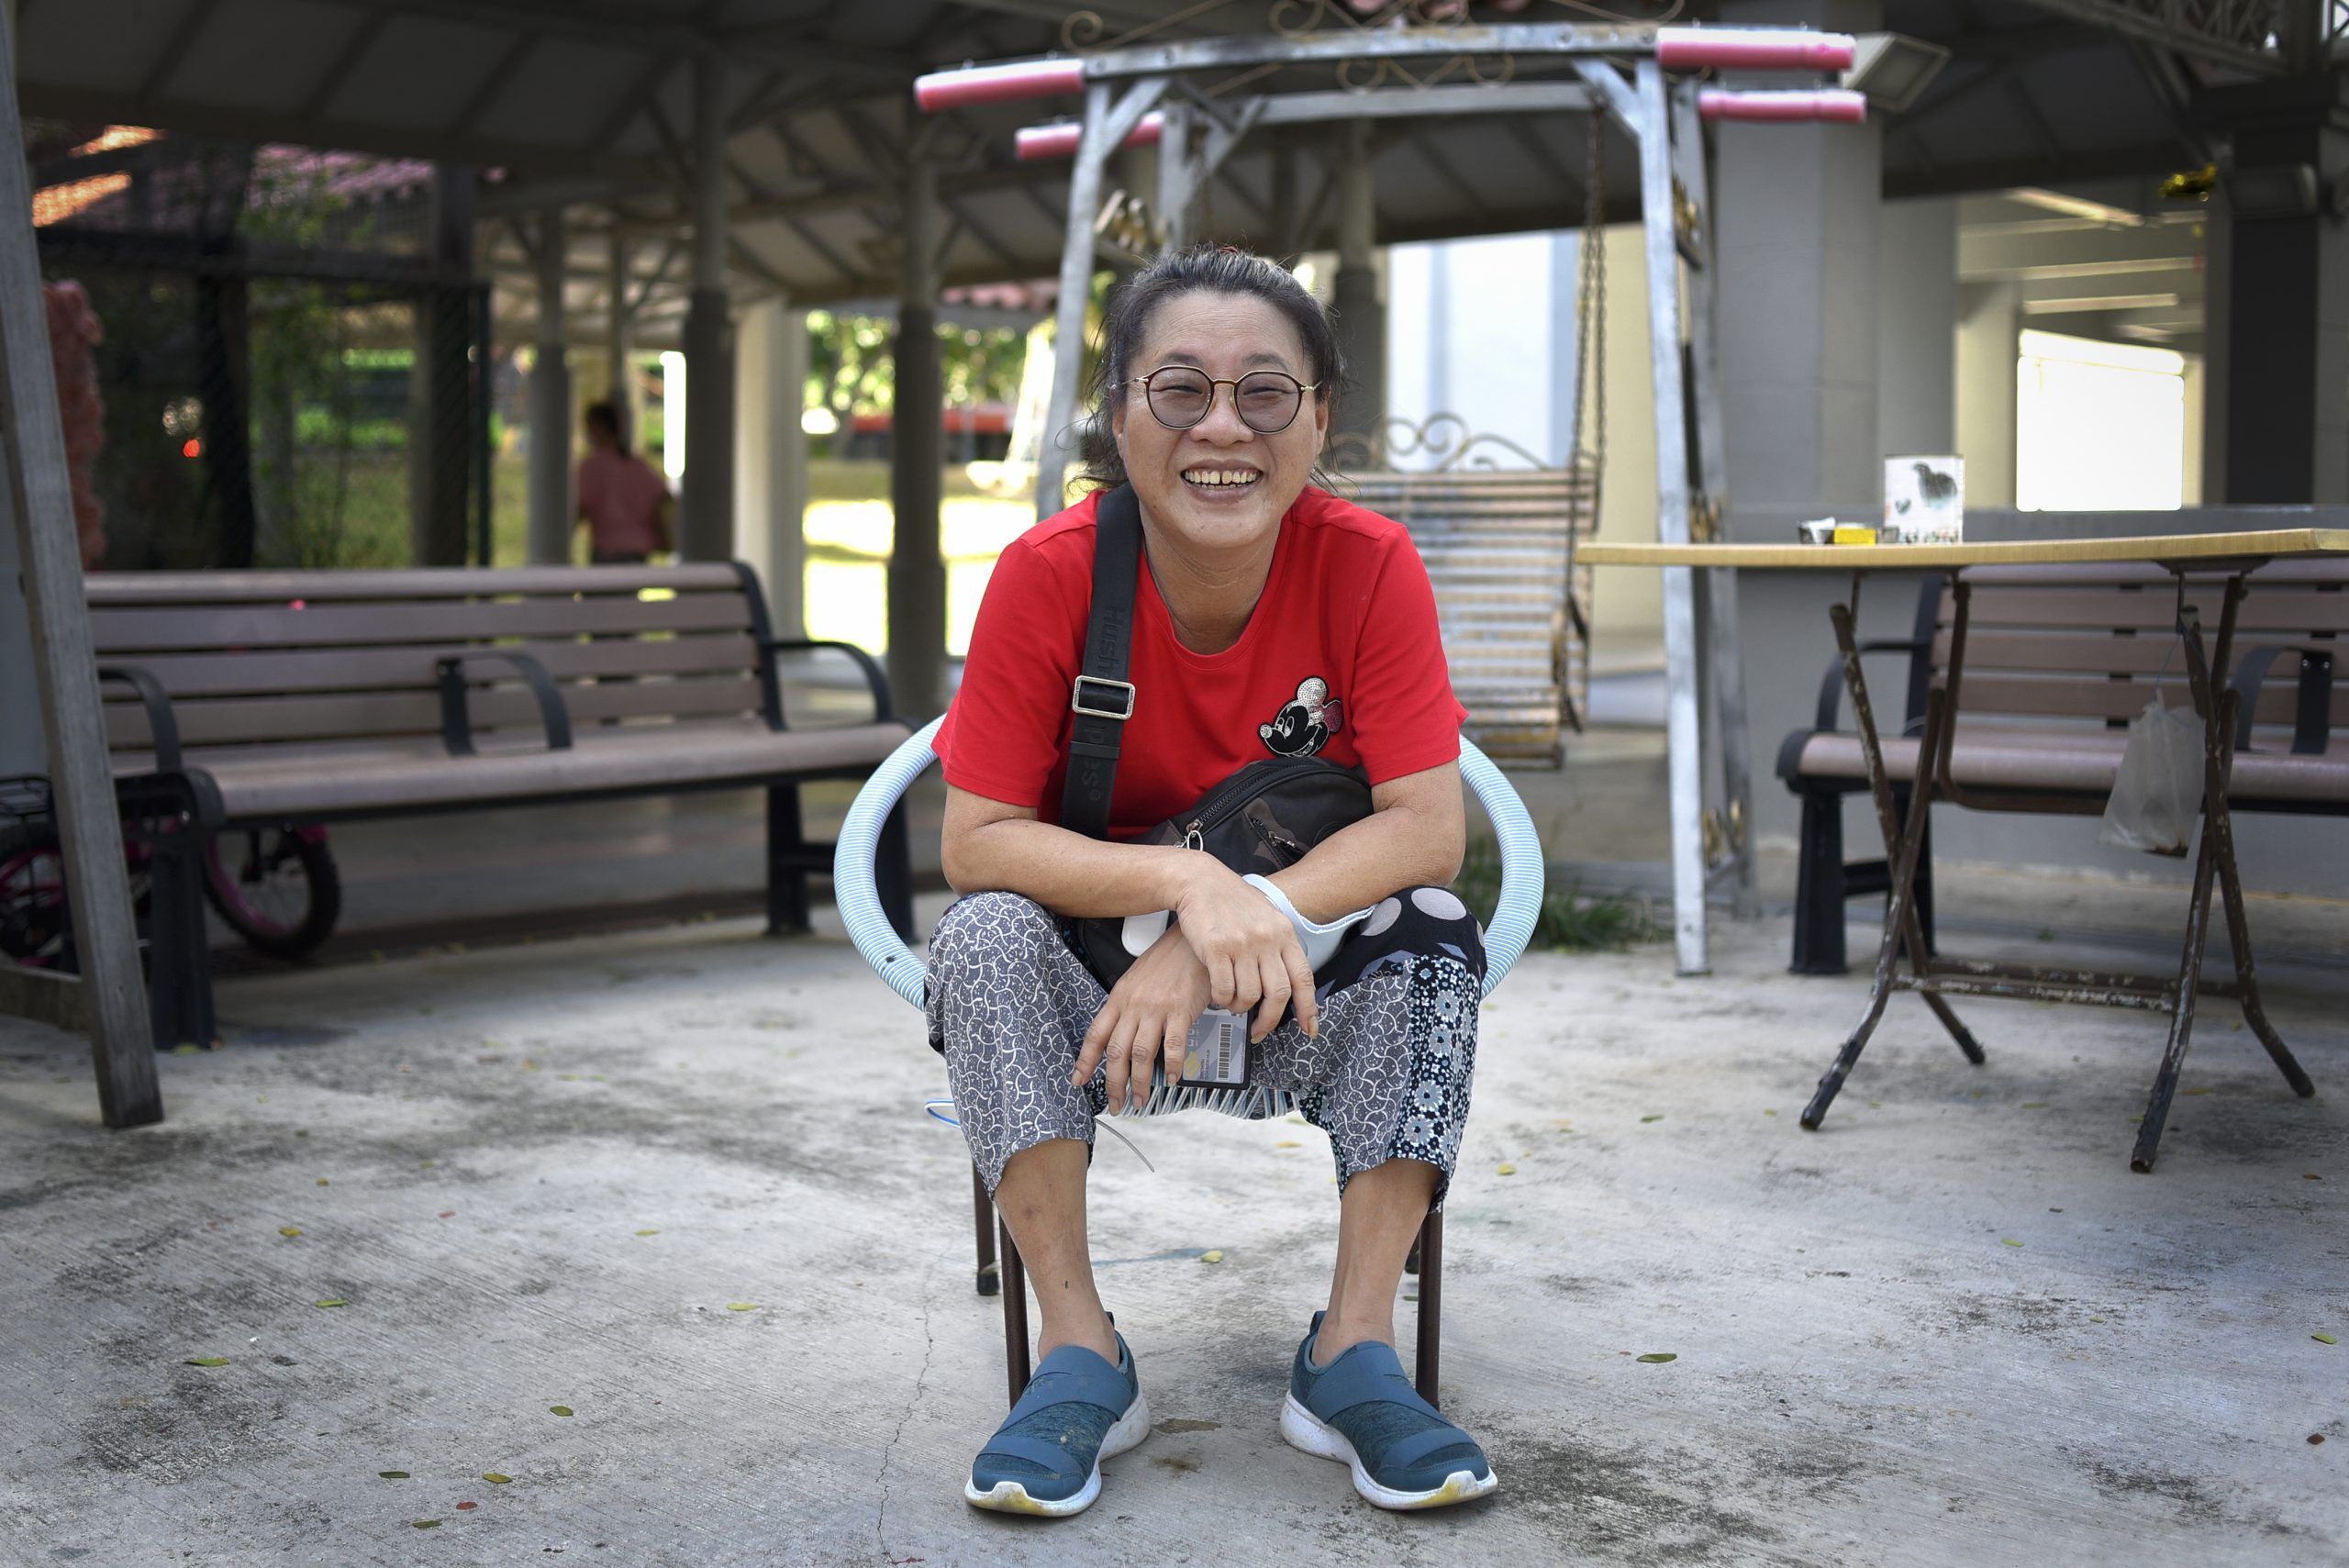 Madam Sandy Goh is a familiar face at the Senior Residents' Corner of Block 702 Bedok Reservoir Road. With the help of fellow residents, she coordinates frequent food distribution to various blocks in the area.